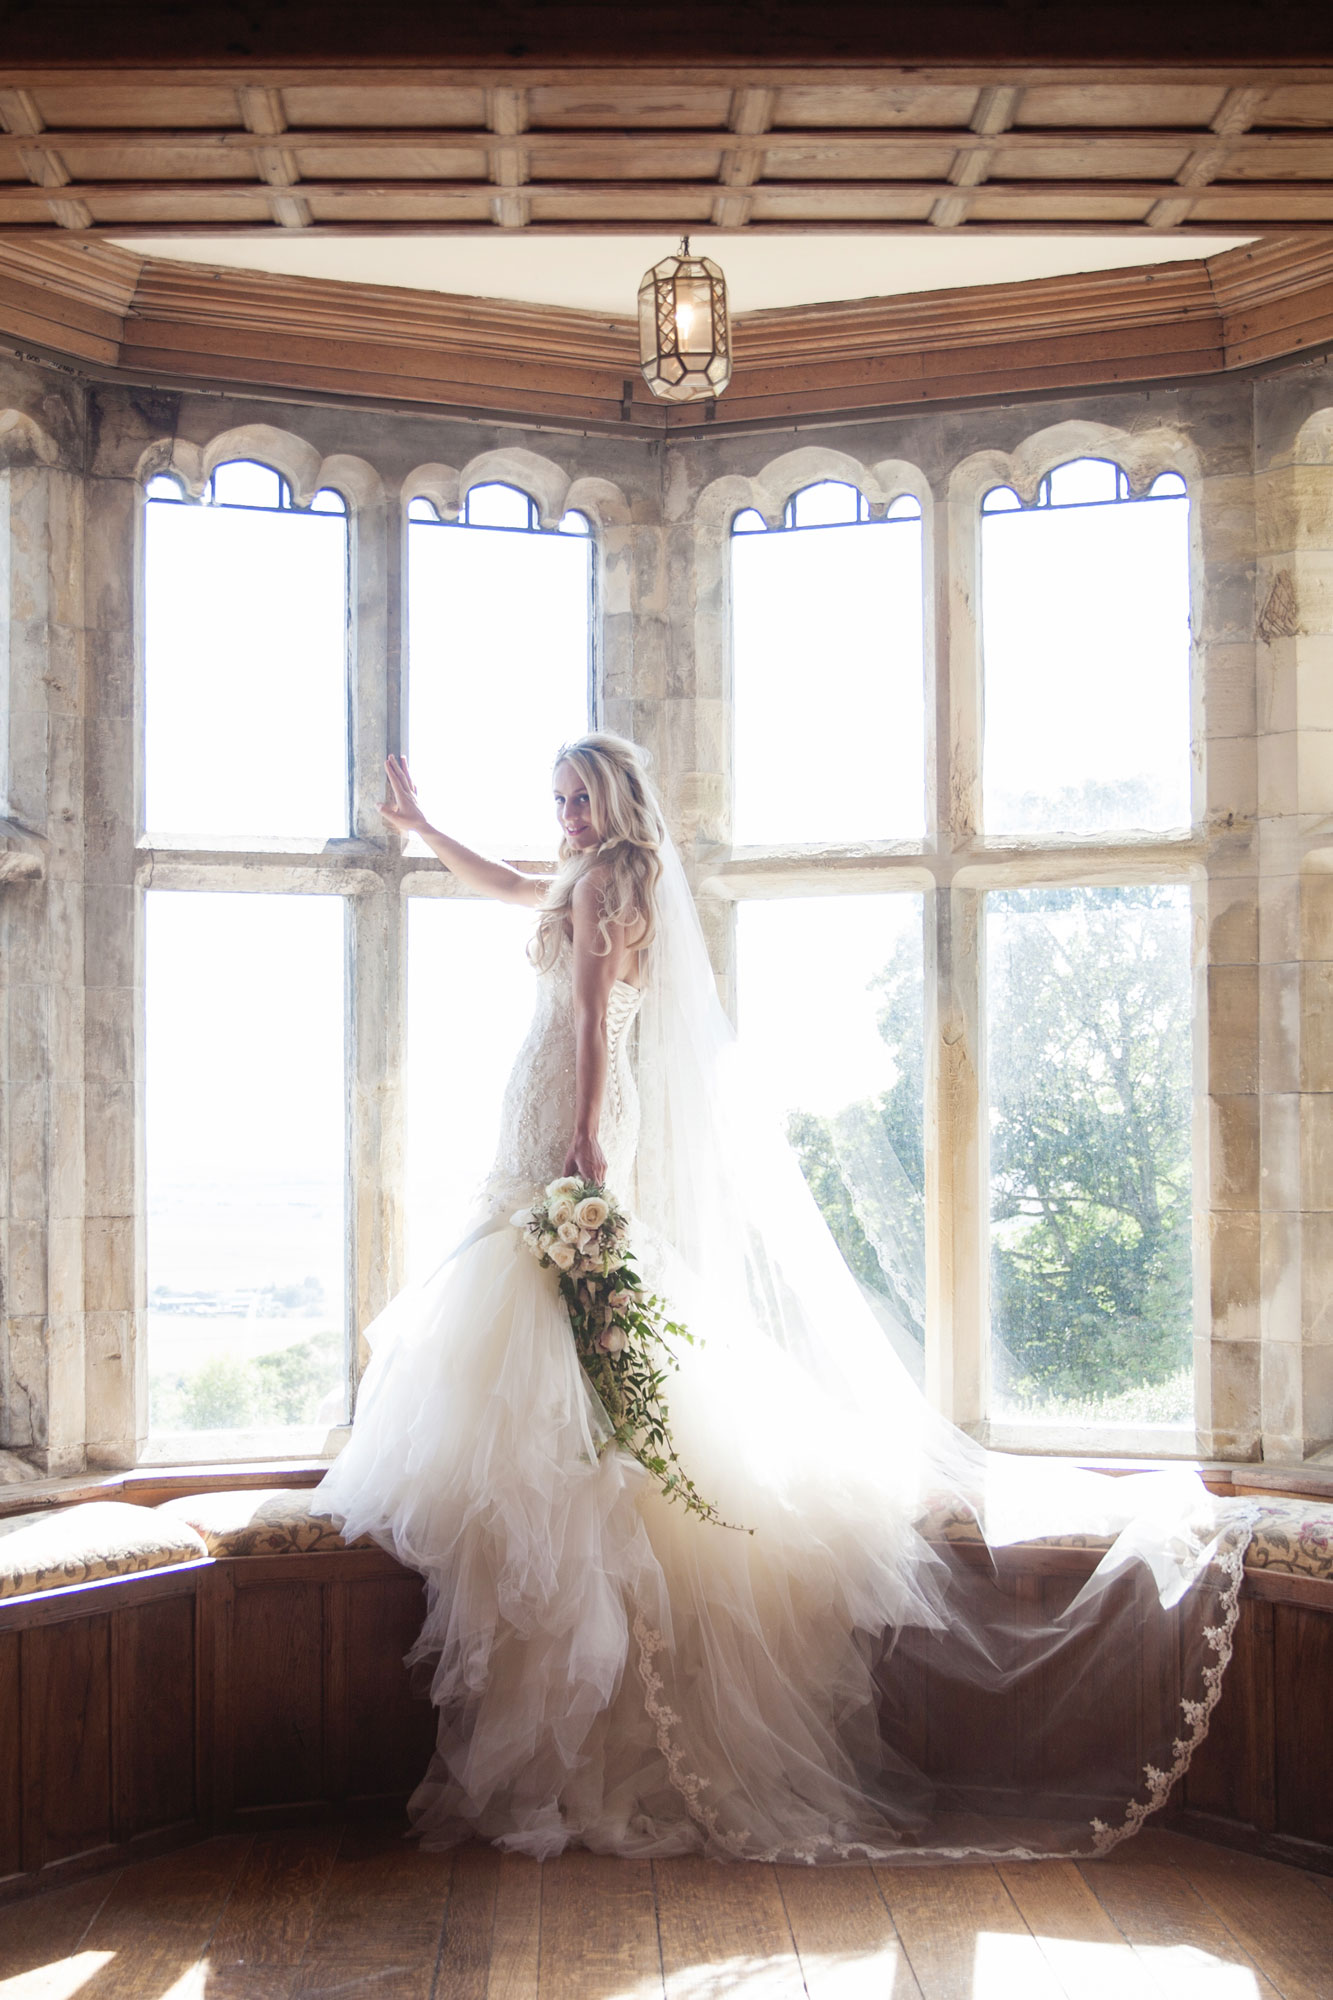 lympne castle bay window with bride